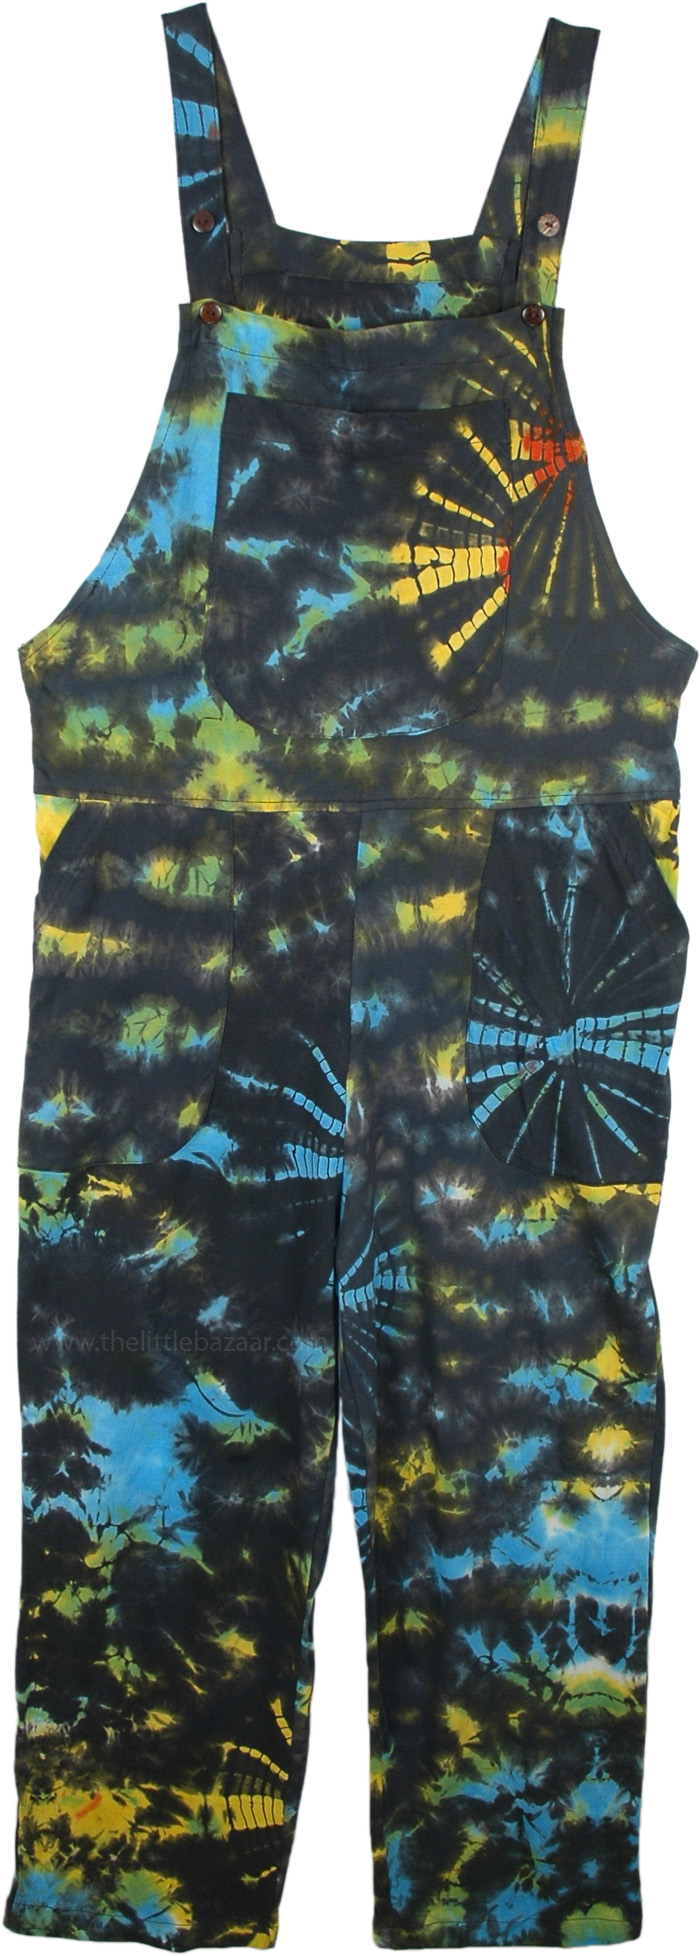 Summer Splash Tie Dye Hippie Dungaree in Cotton